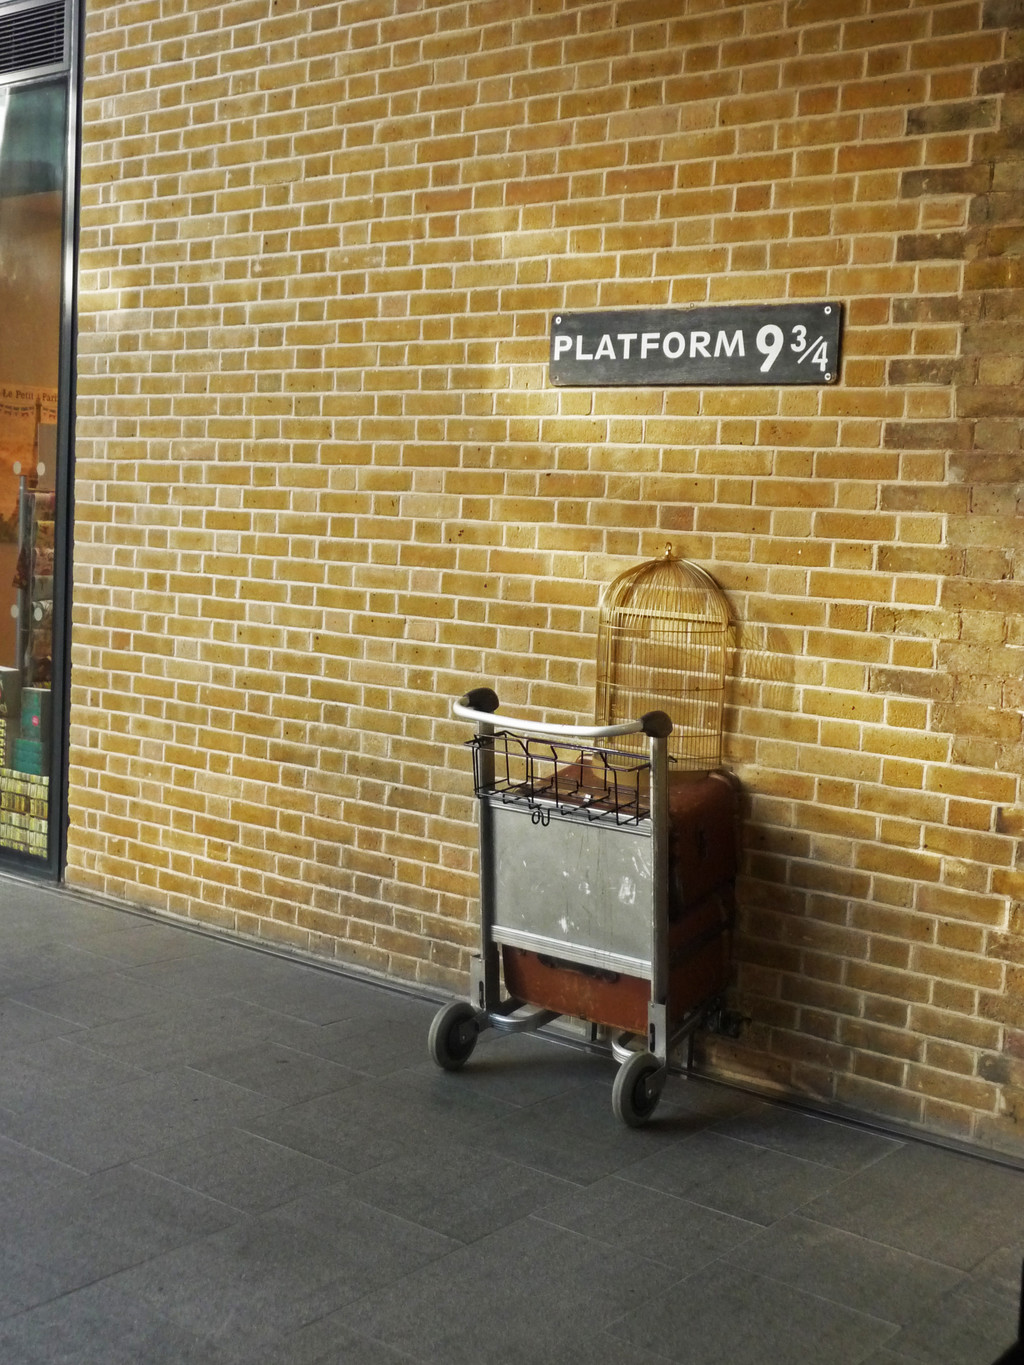 King`s Cross station?...*cue Harry Potter music*